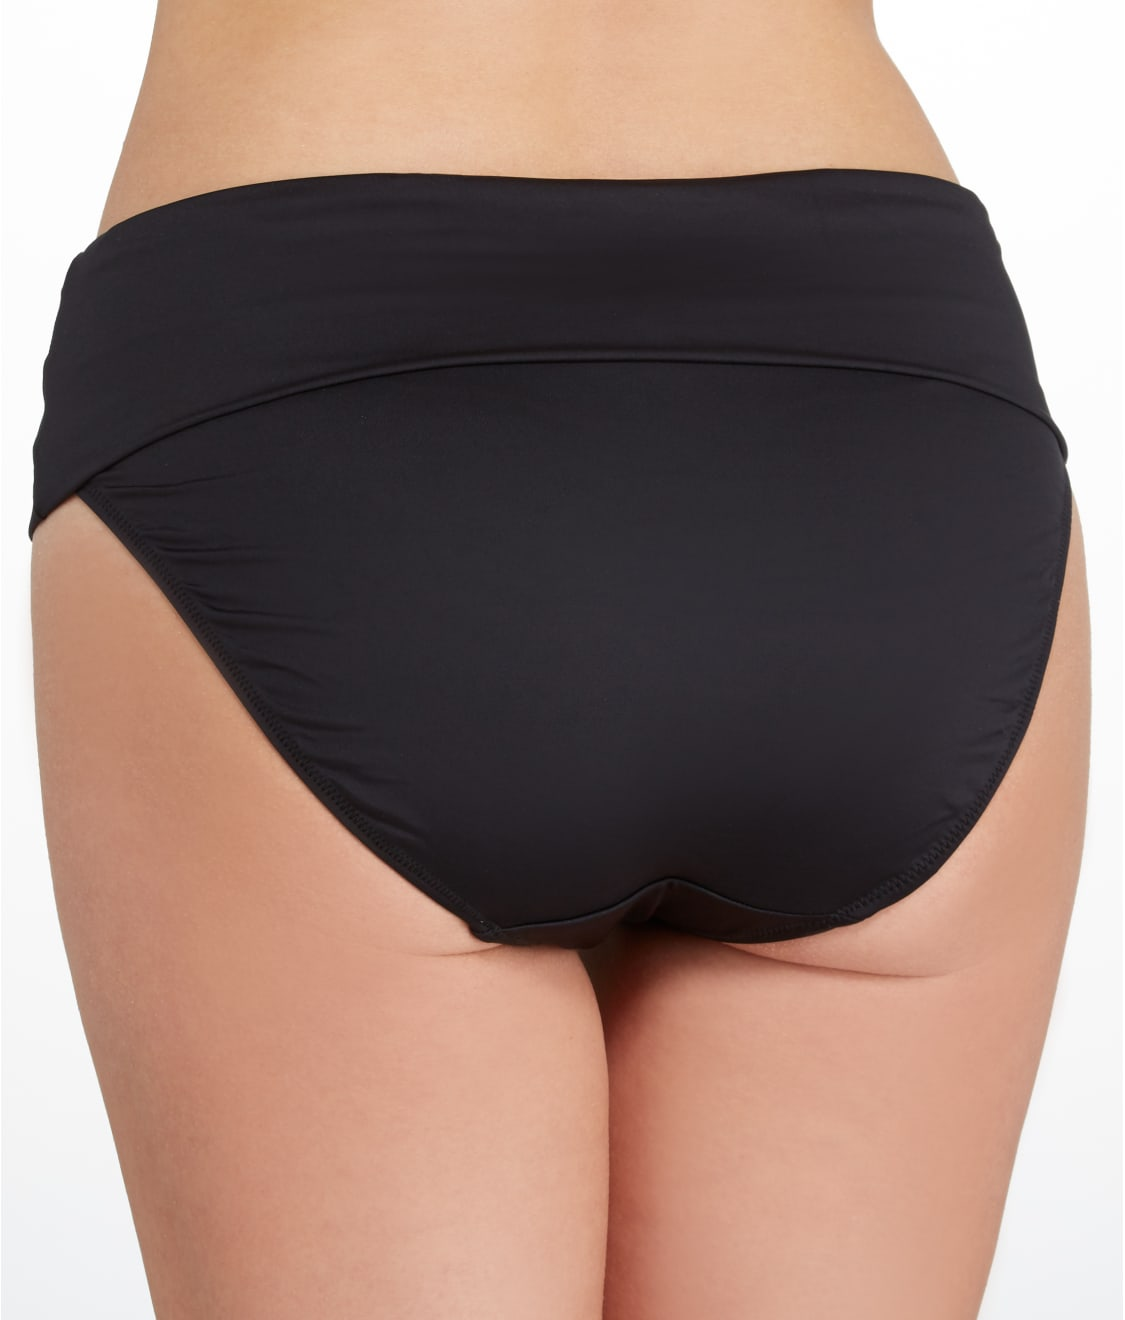 a62bee0f4c7e1 See Versailles Fold-Over Bikini Bottom in Black